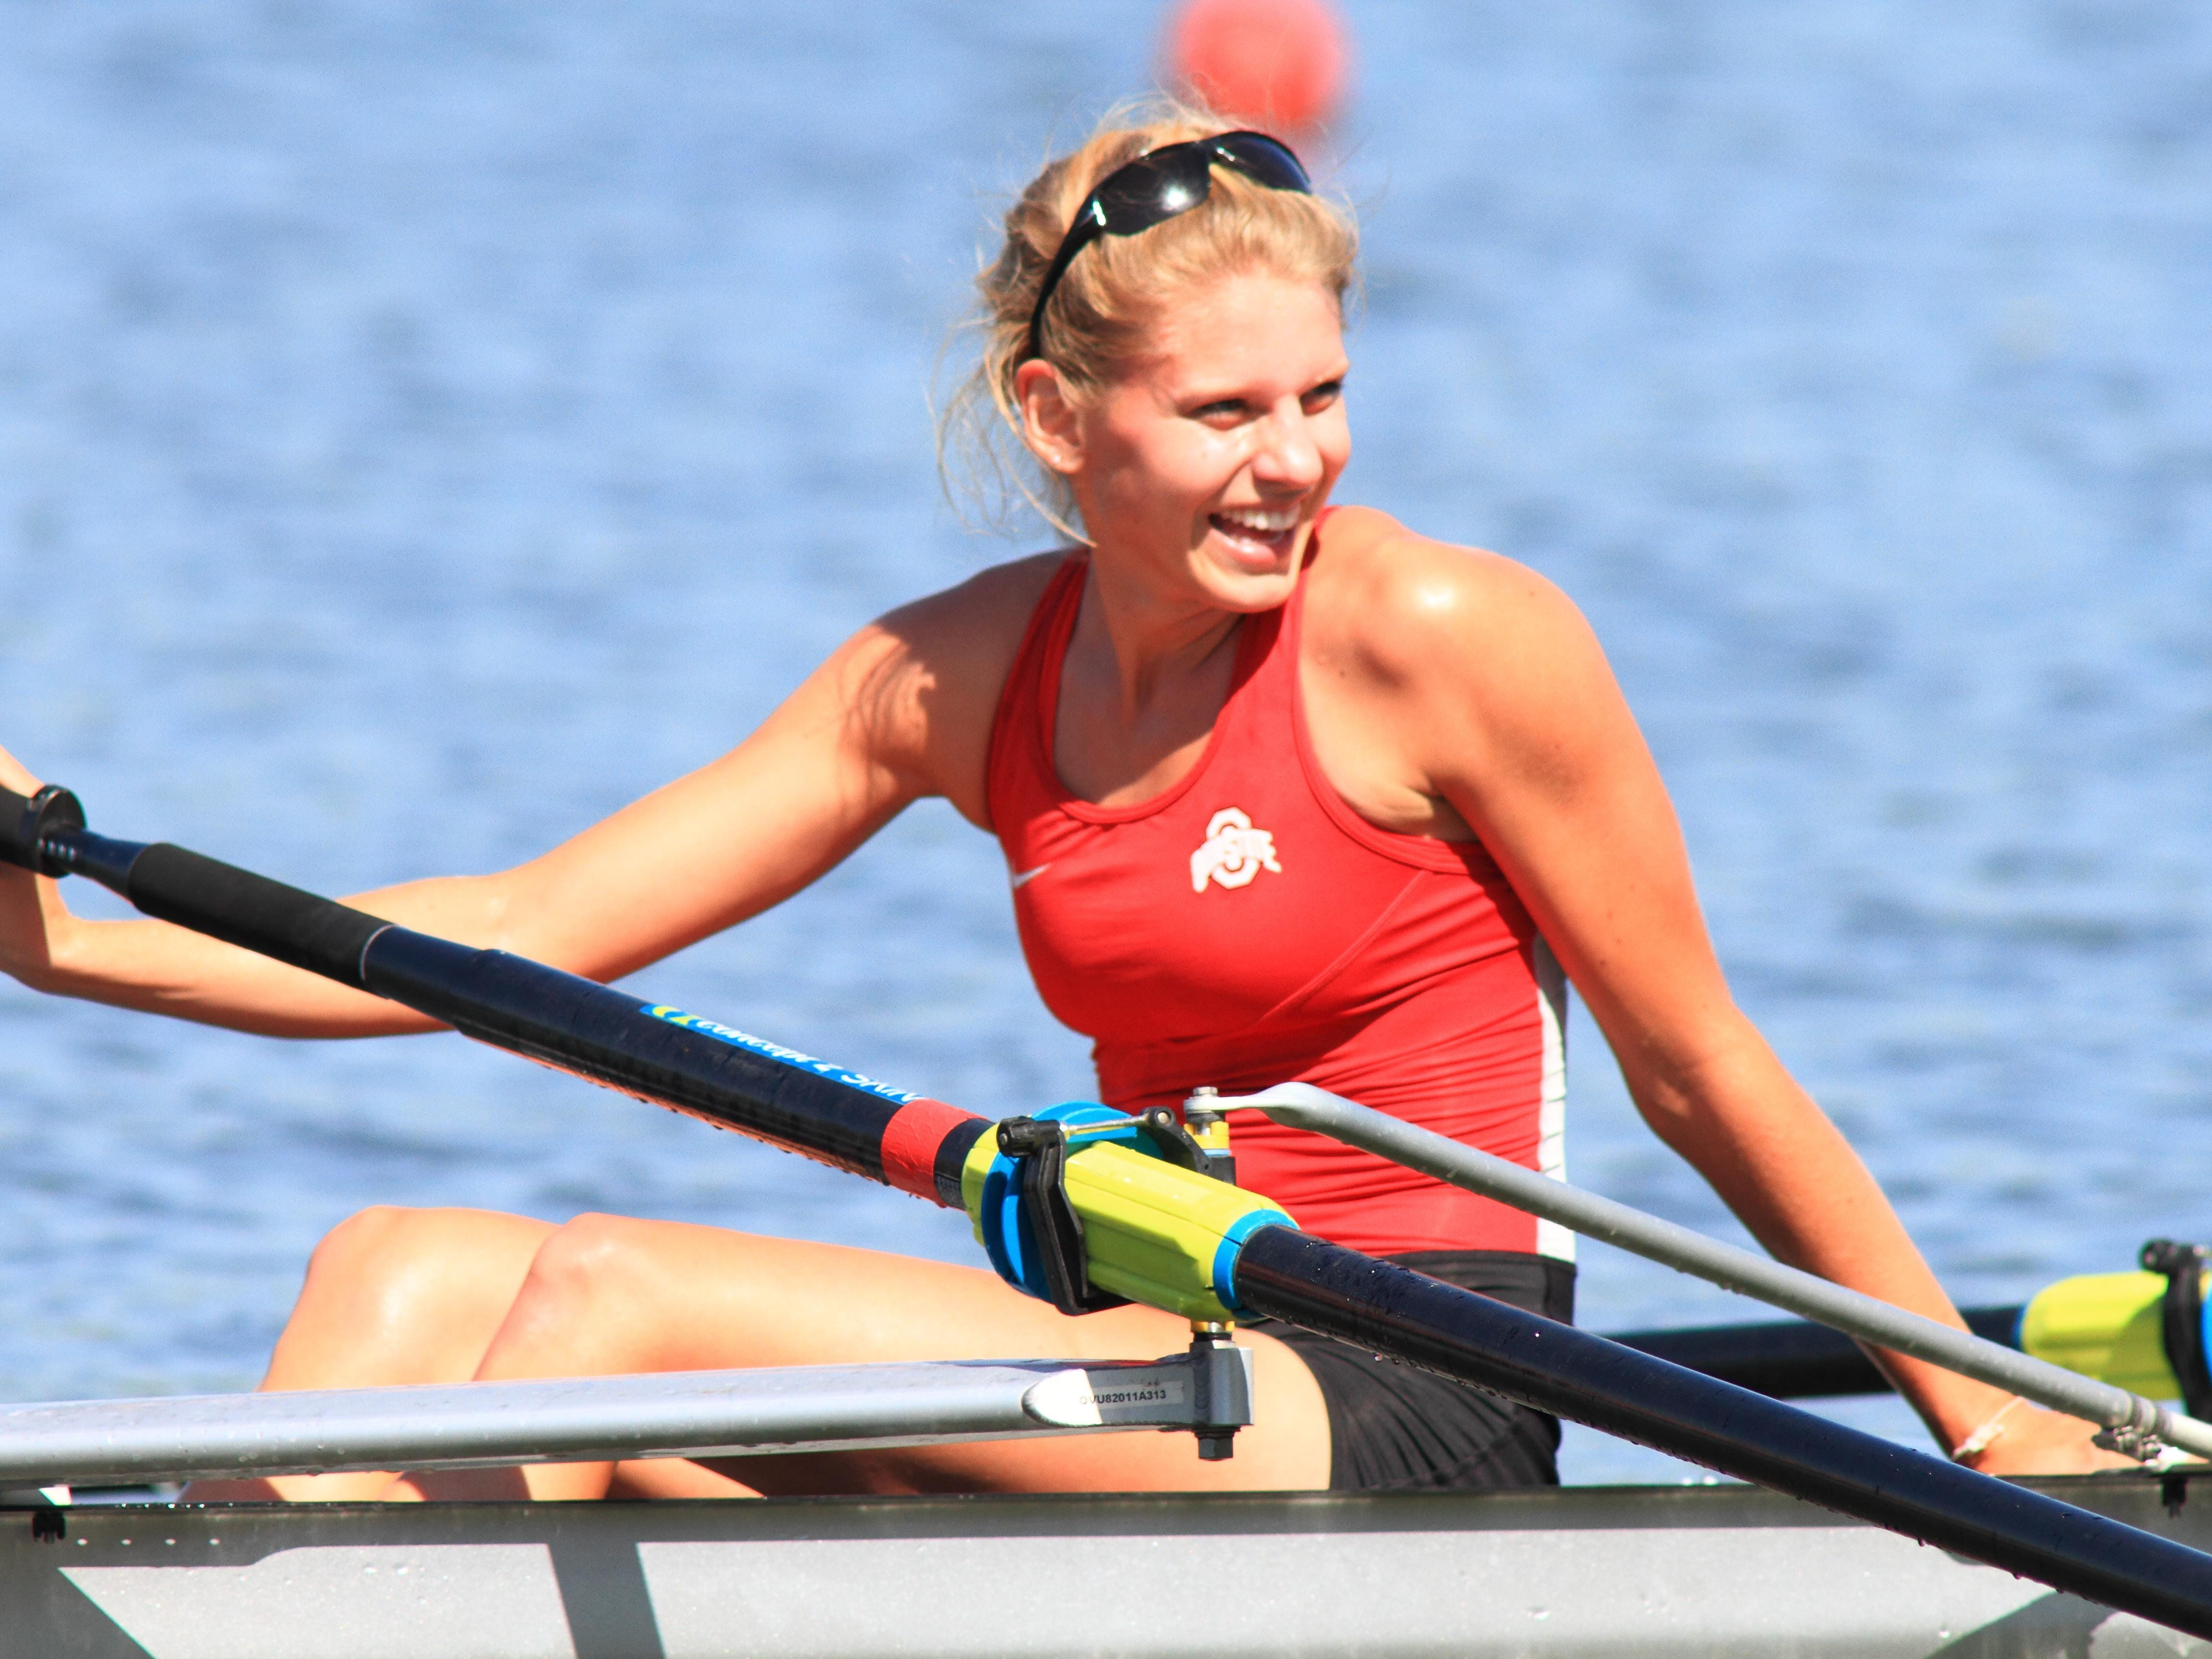 Mount Notre Dame graduate Chloe Meyer took part in The Ohio State University Rowing team's 2014 NCAA Rowing Championship in Indianapolis.